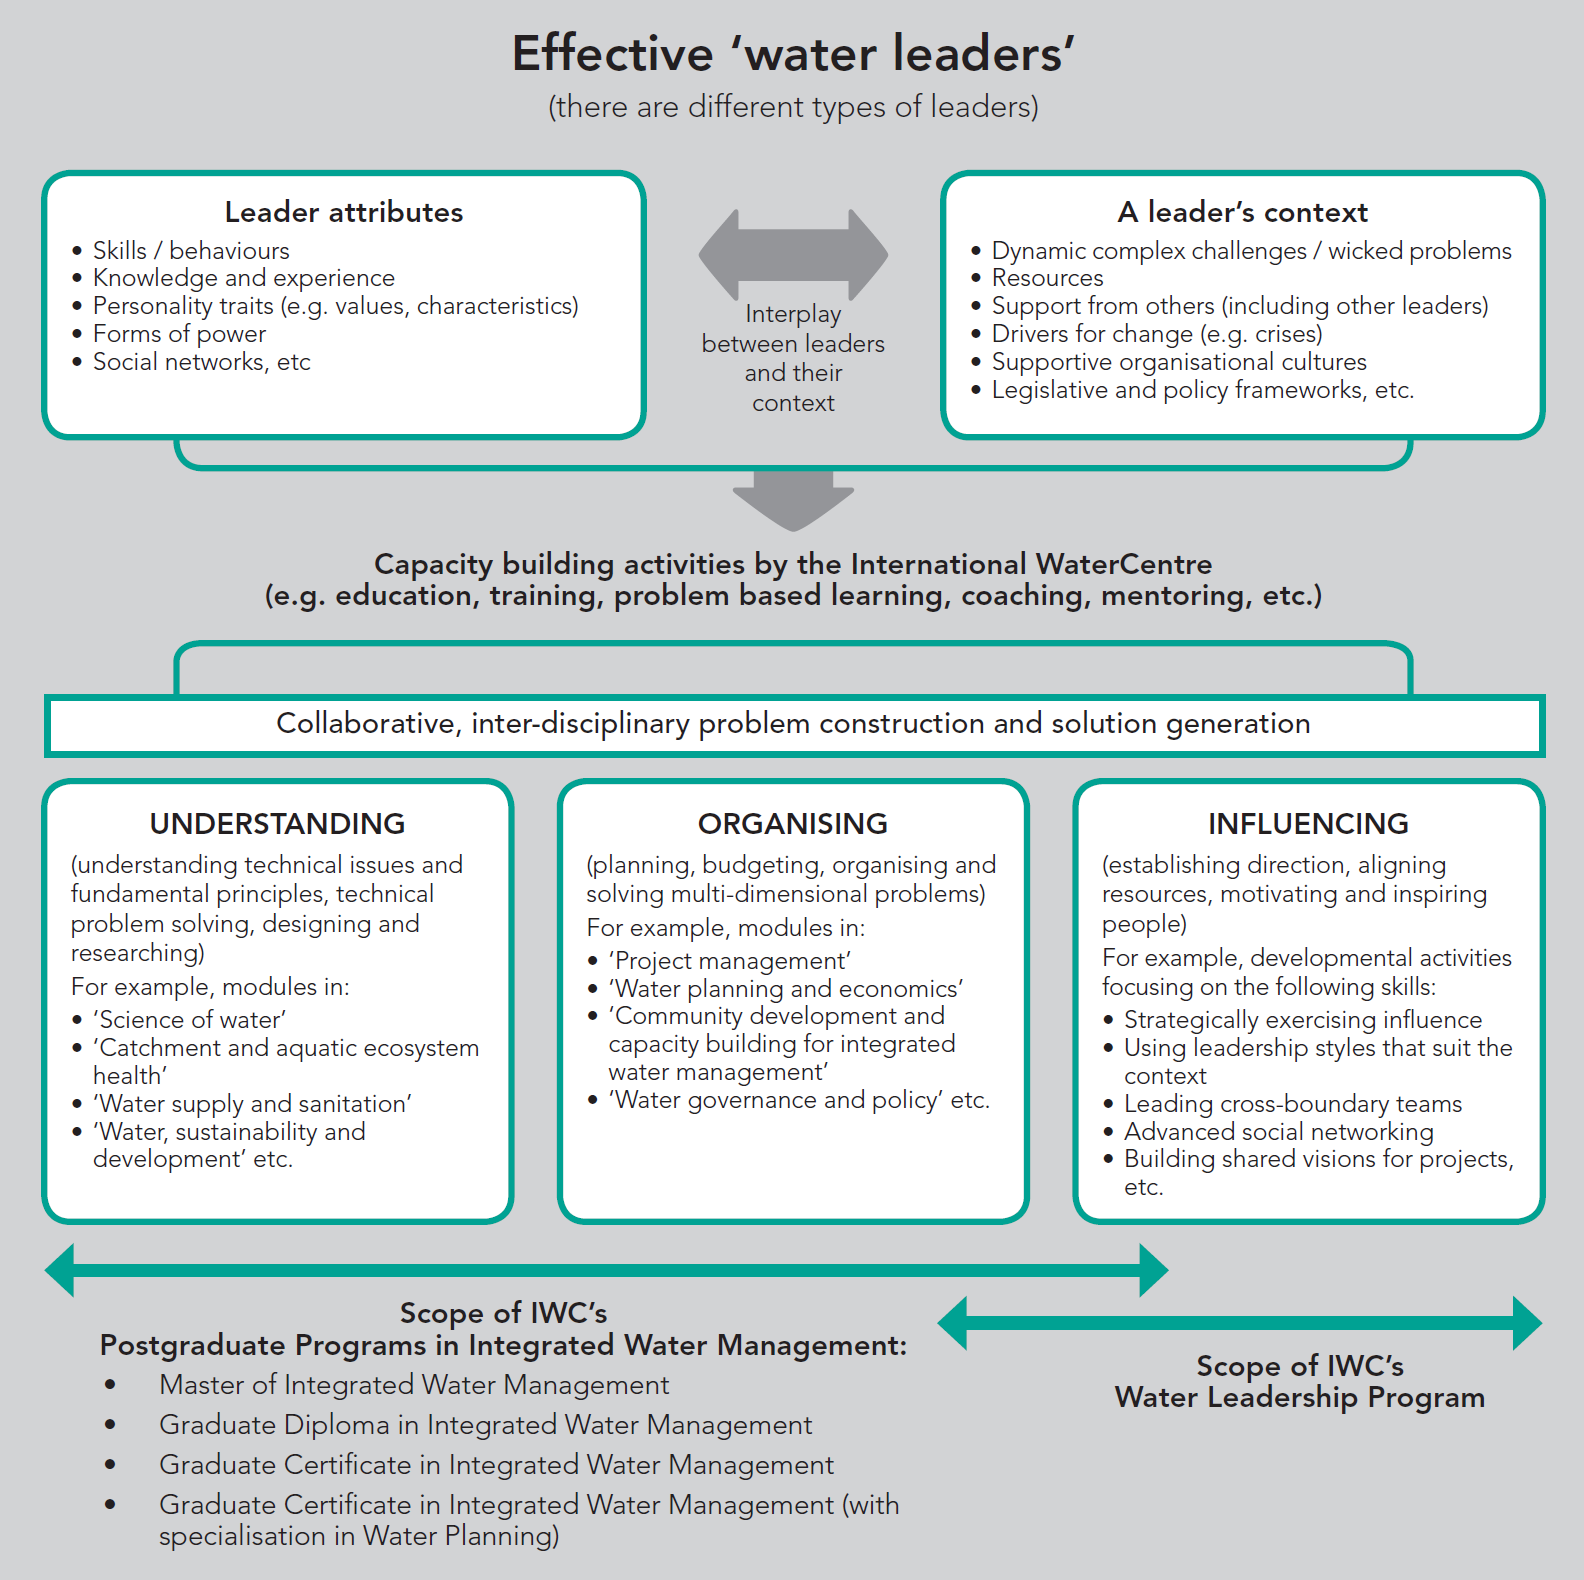 2. Do you recognise the need for leadership abilities (in addition to management and technical abilities) to drive the change necessary to advance more integrated forms of water management?